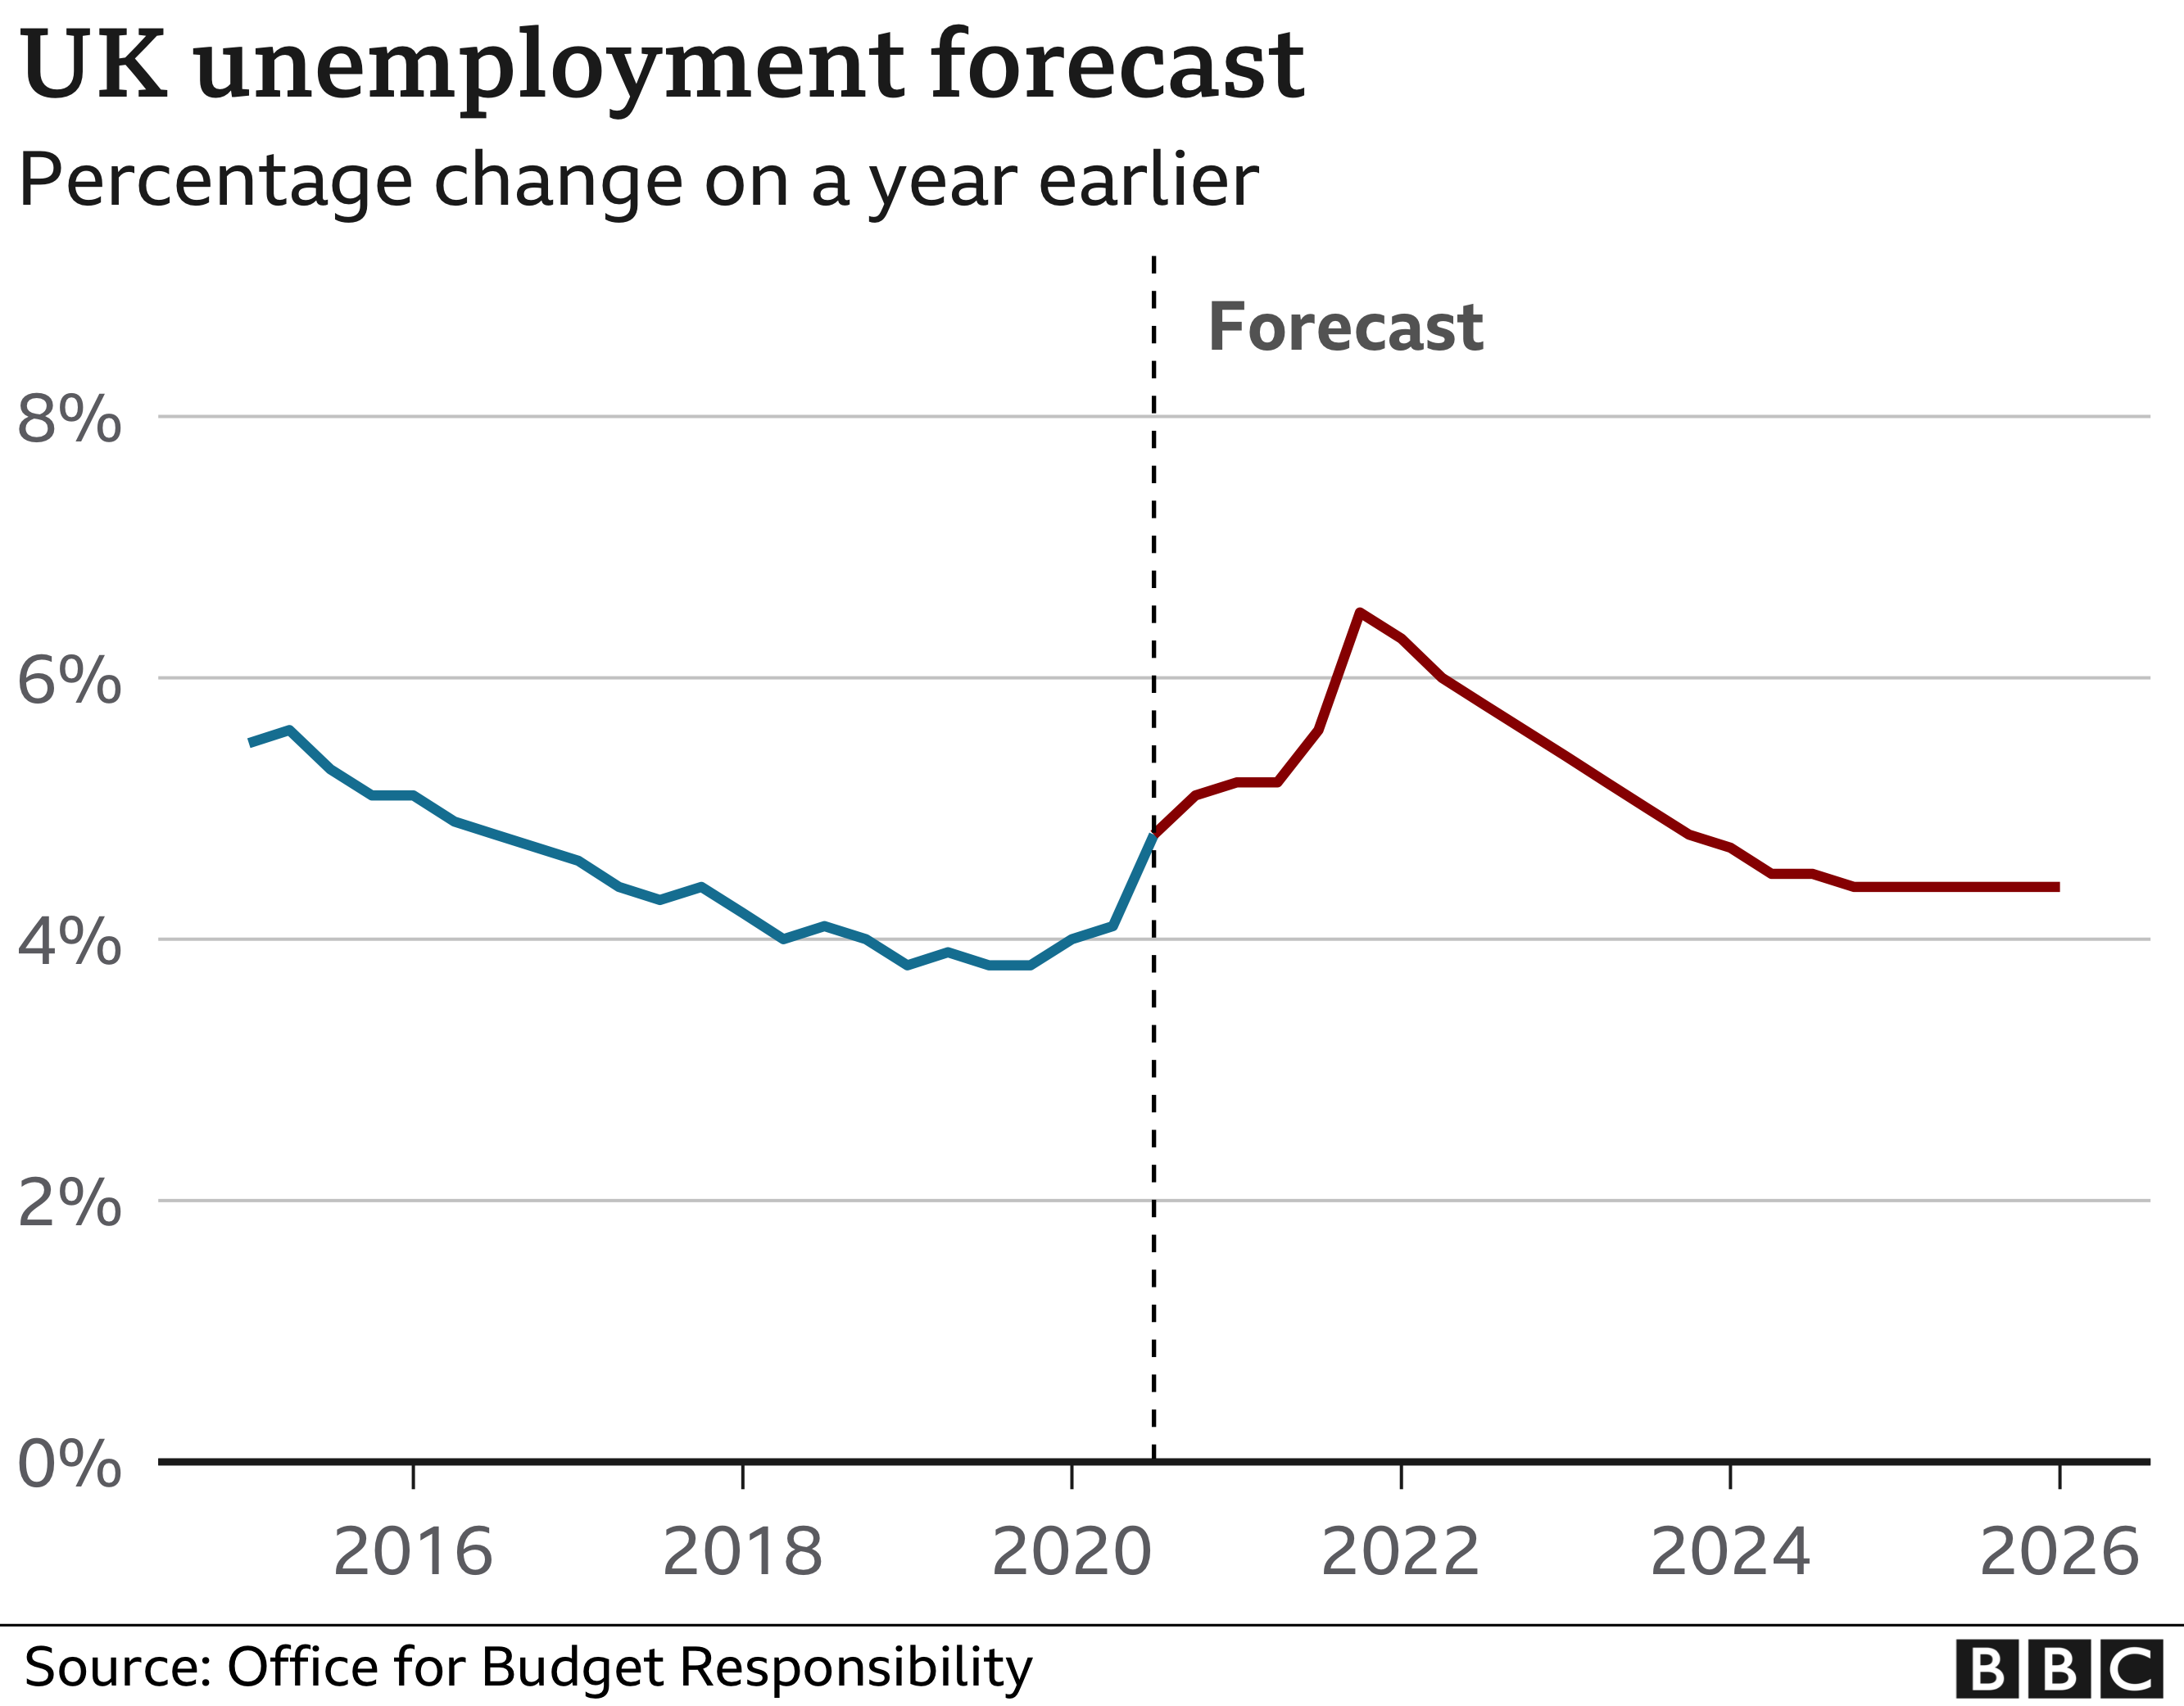 Unemployment is expected to peak at around 6.5% at the end of 2021